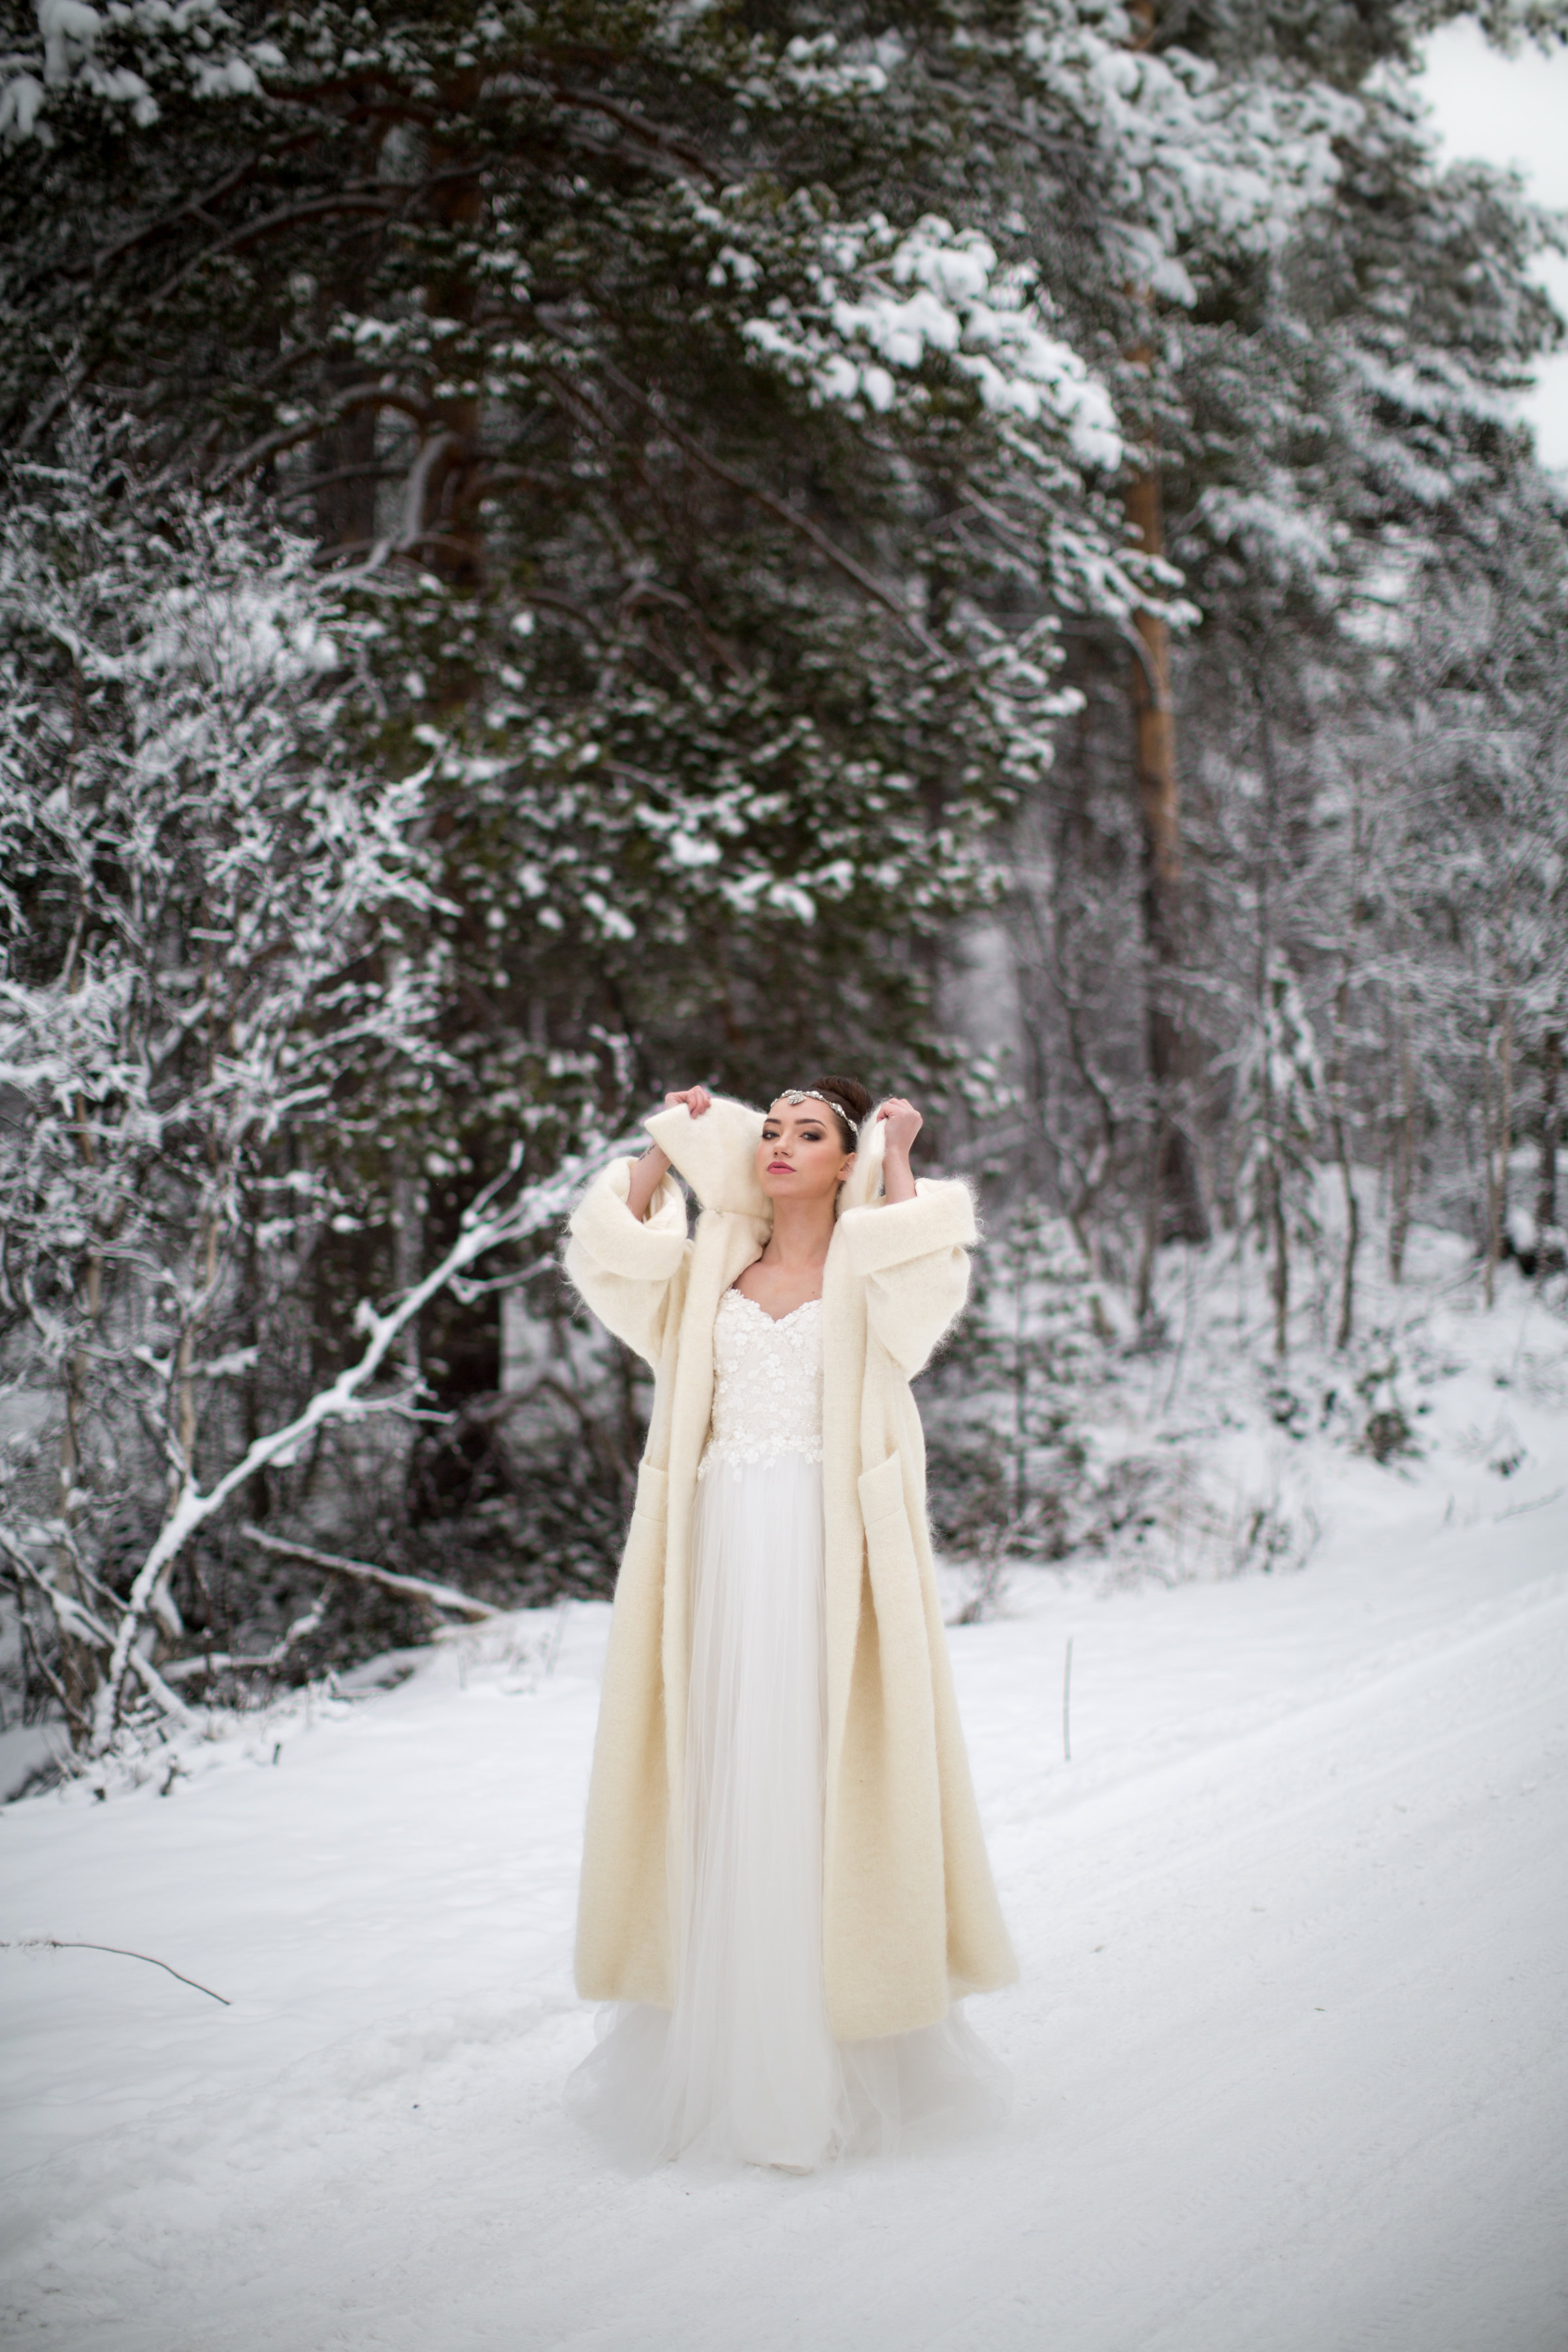 Snowy Winter Wedding Inspiration Shoot In NorwayJoanne